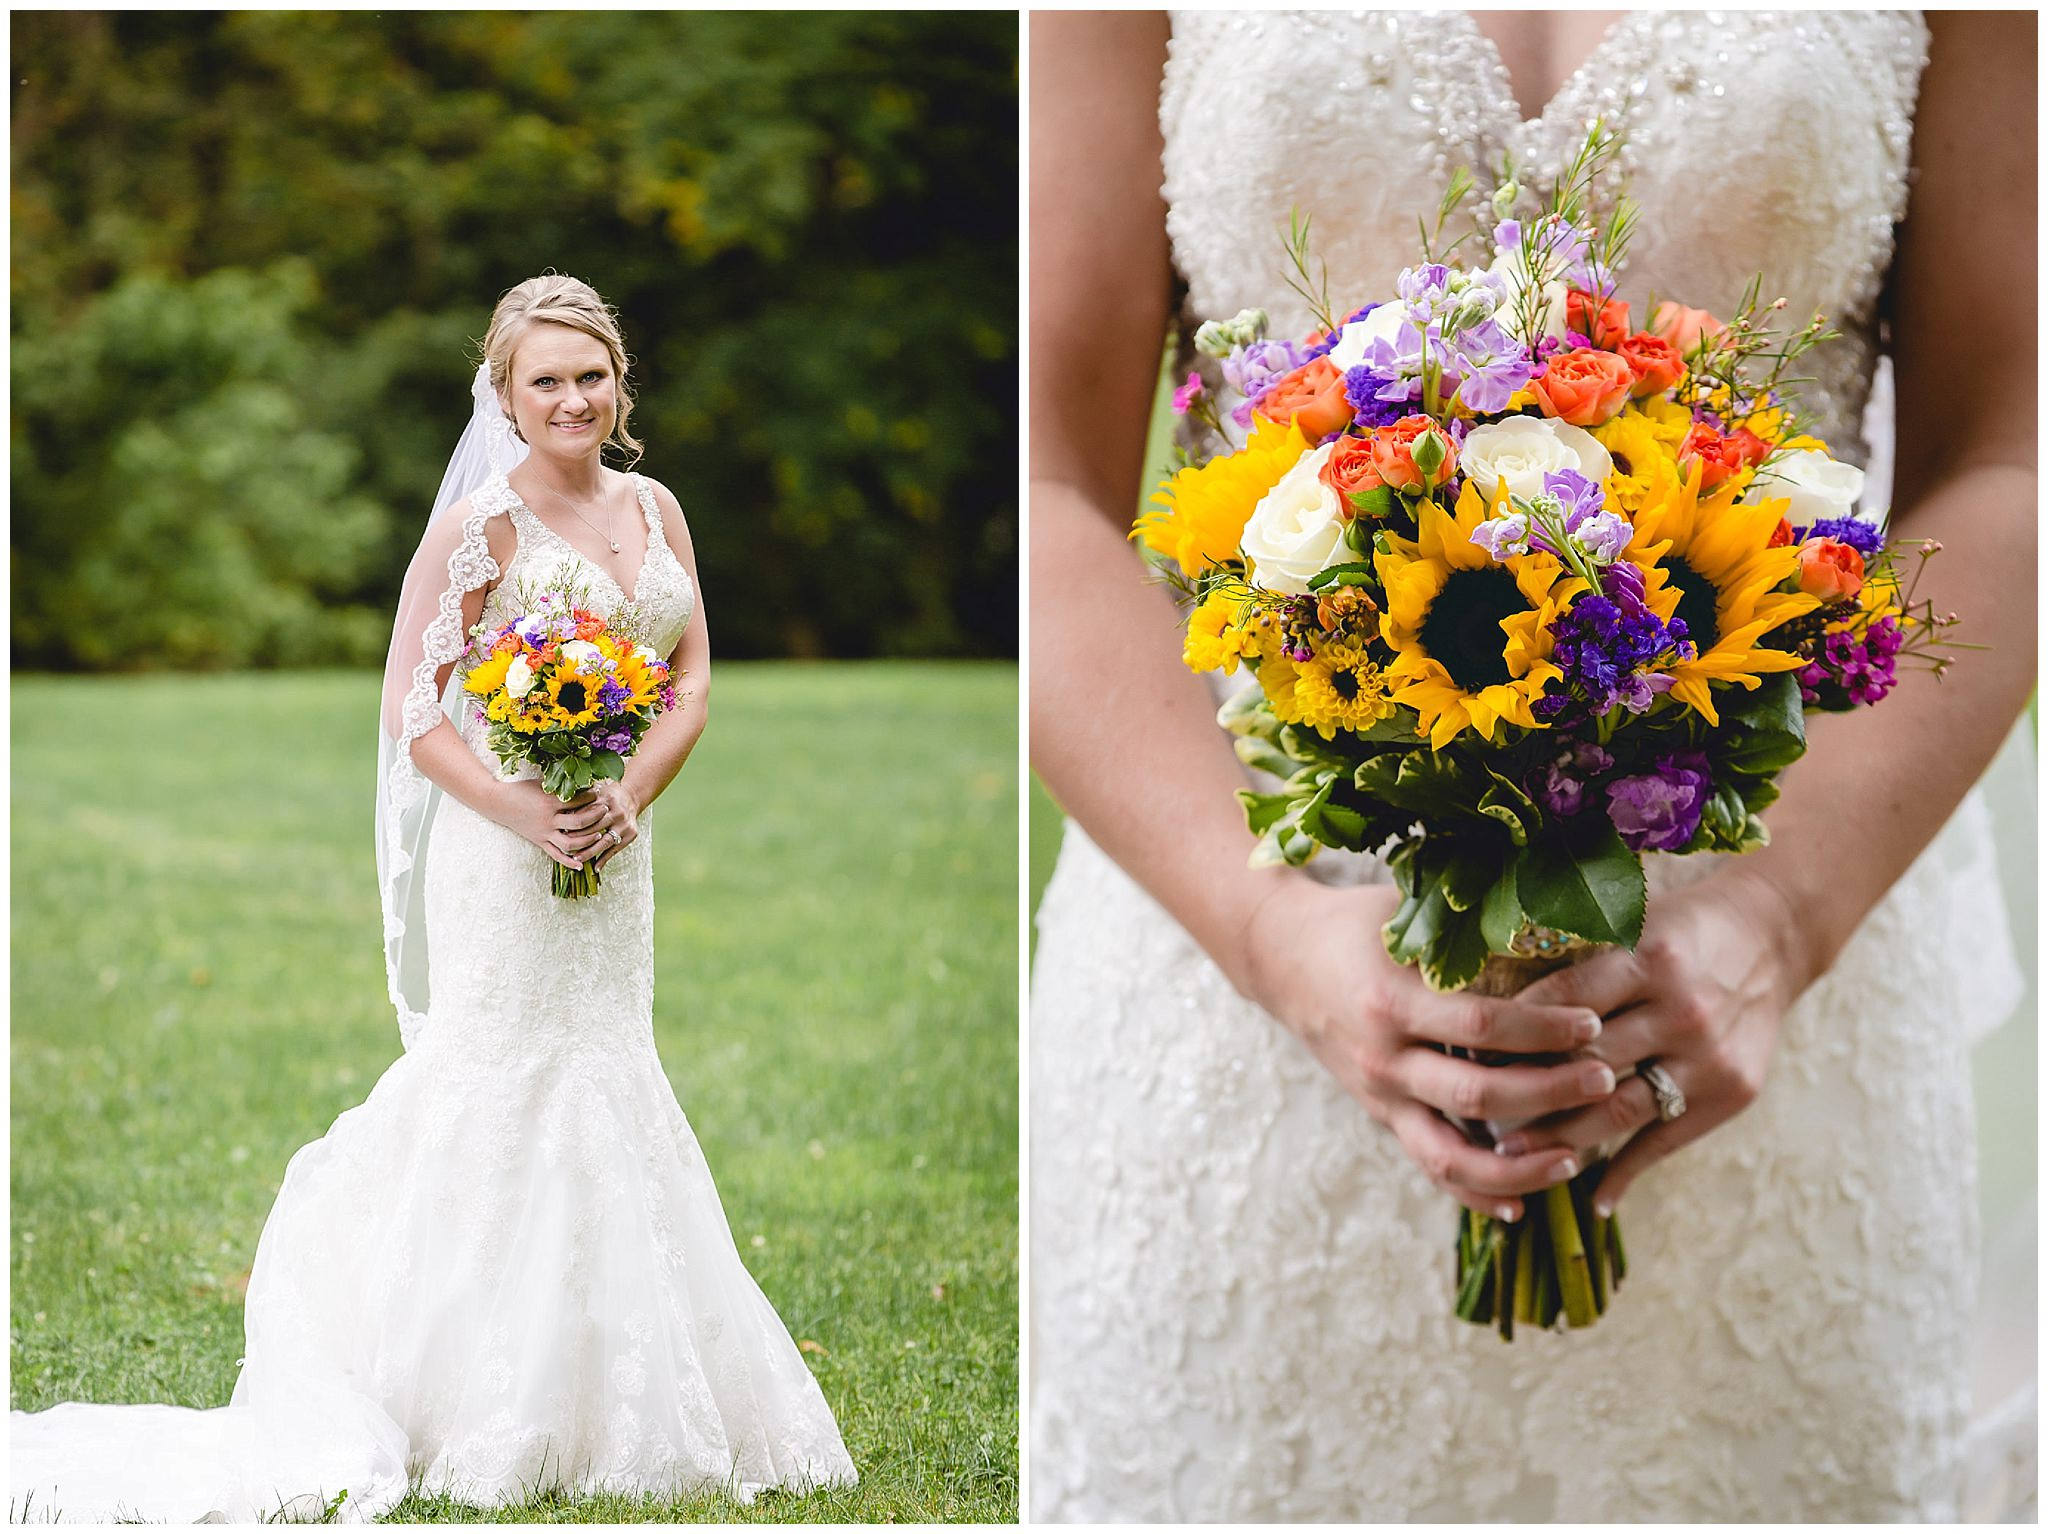 Bride poses with her bouquet by Patti's Petals Flower Shop